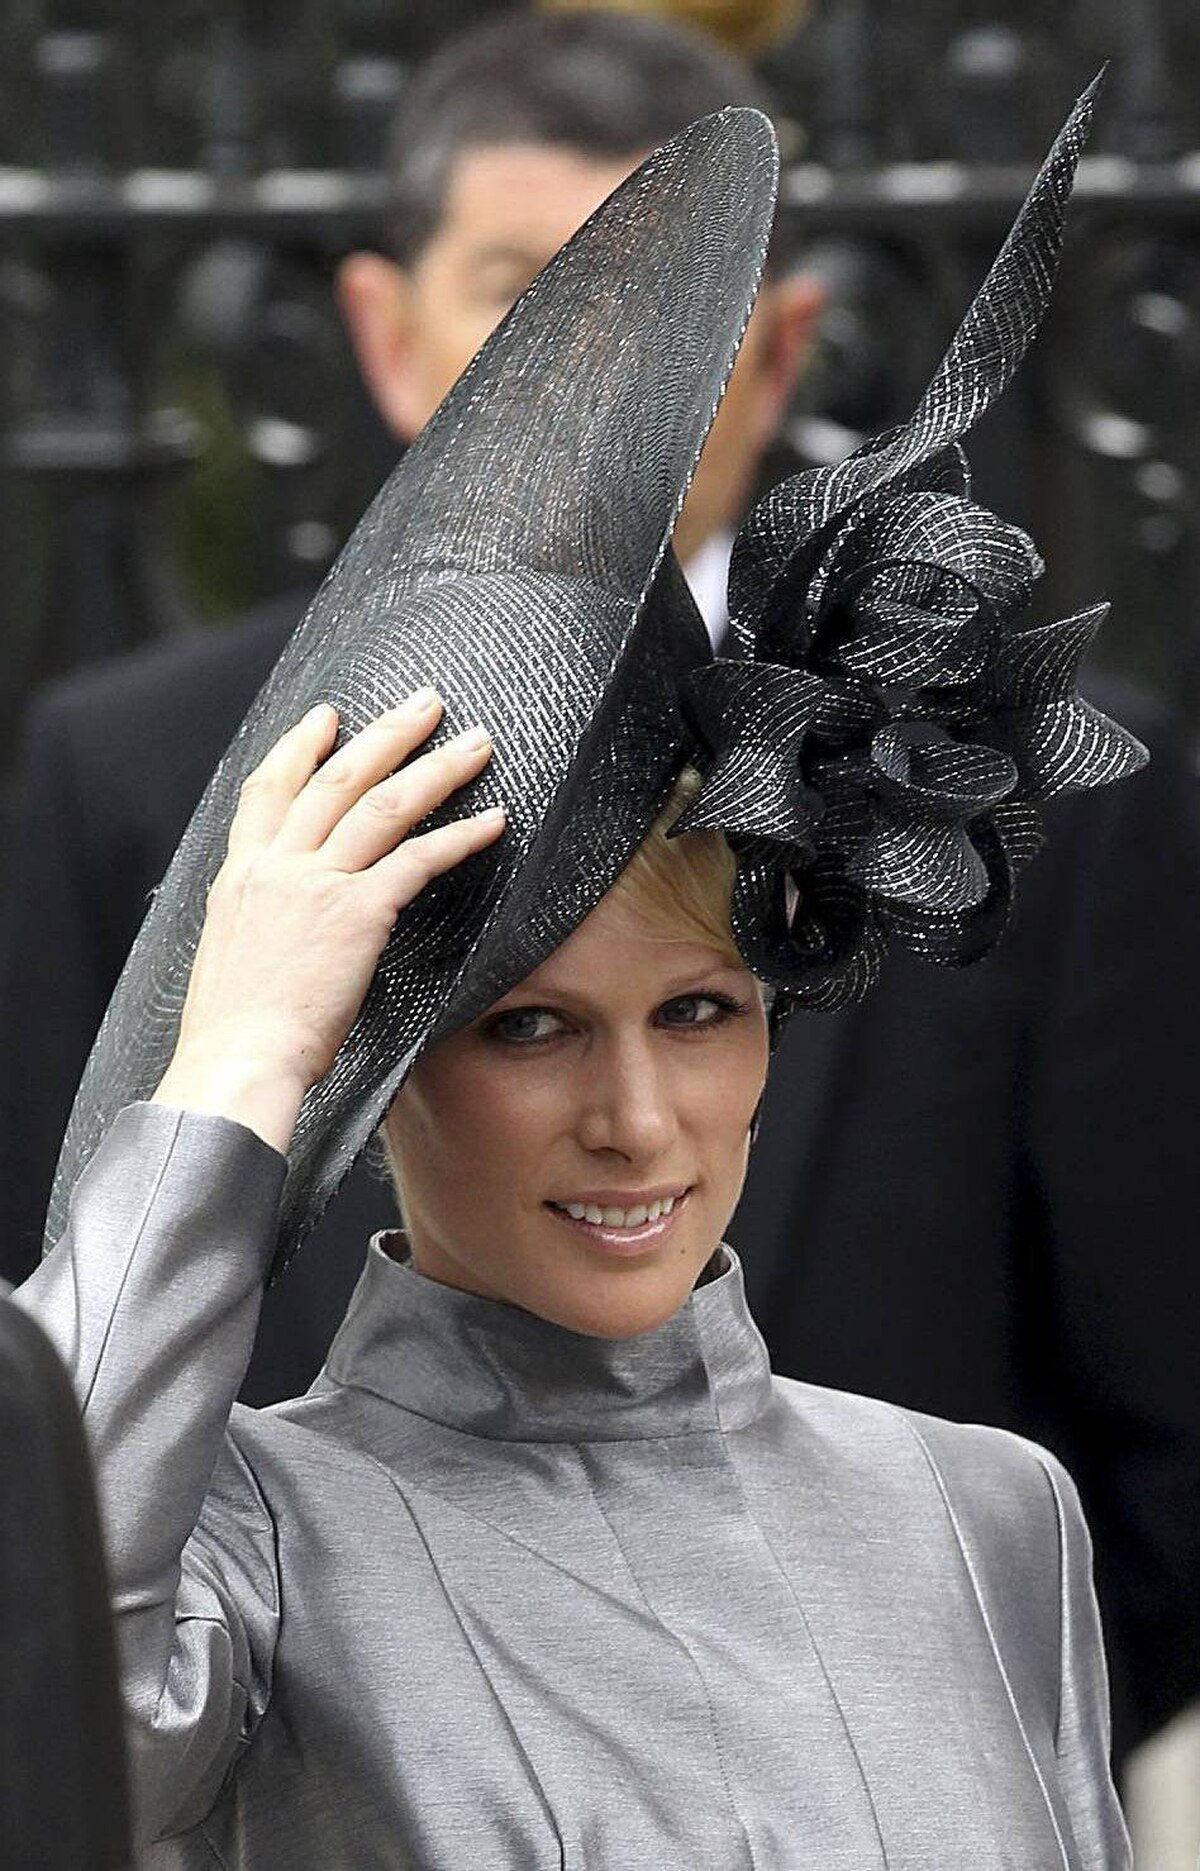 Zara Phillips arrives to attend the Royal Wedding of Prince William to Catherine Middleton at Westminster Abbey on April 29, 2011 in London, England.